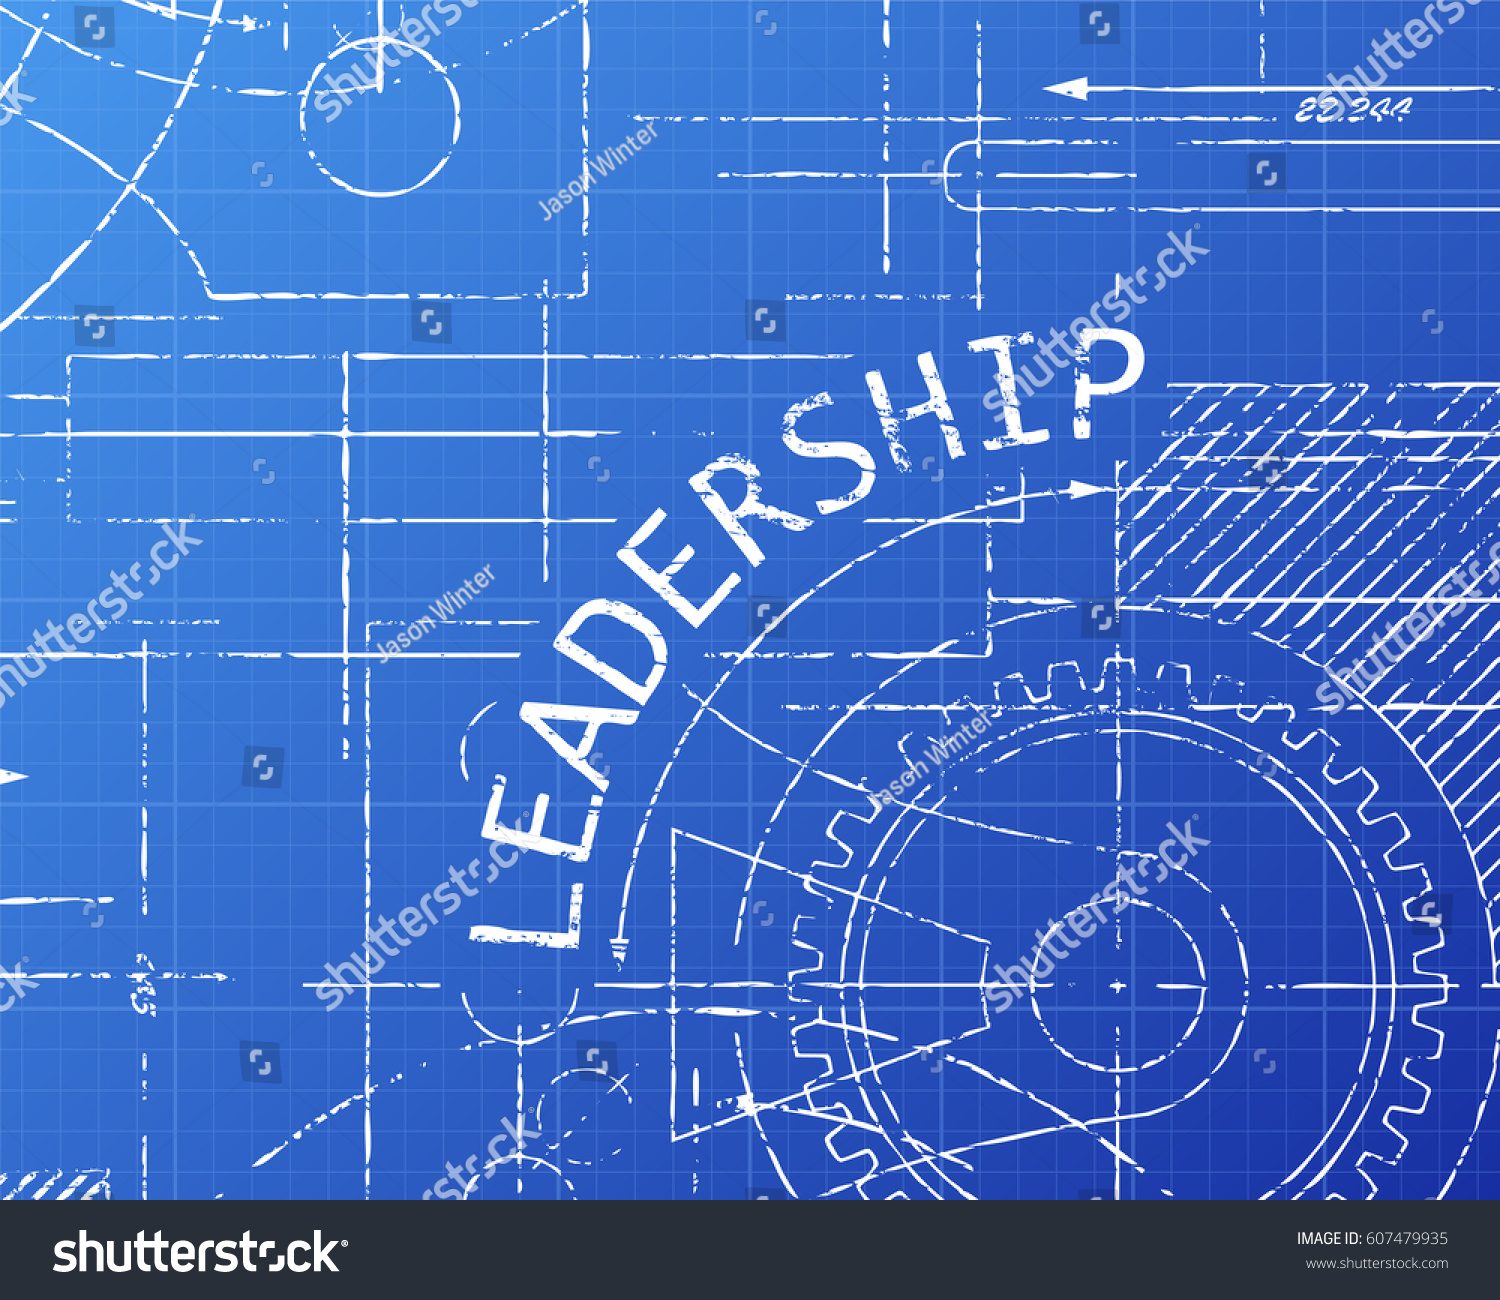 Leadership text gear wheels hand drawn vectores en stock 607479935 leadership text with gear wheels hand drawn on blueprint technical drawing background malvernweather Gallery